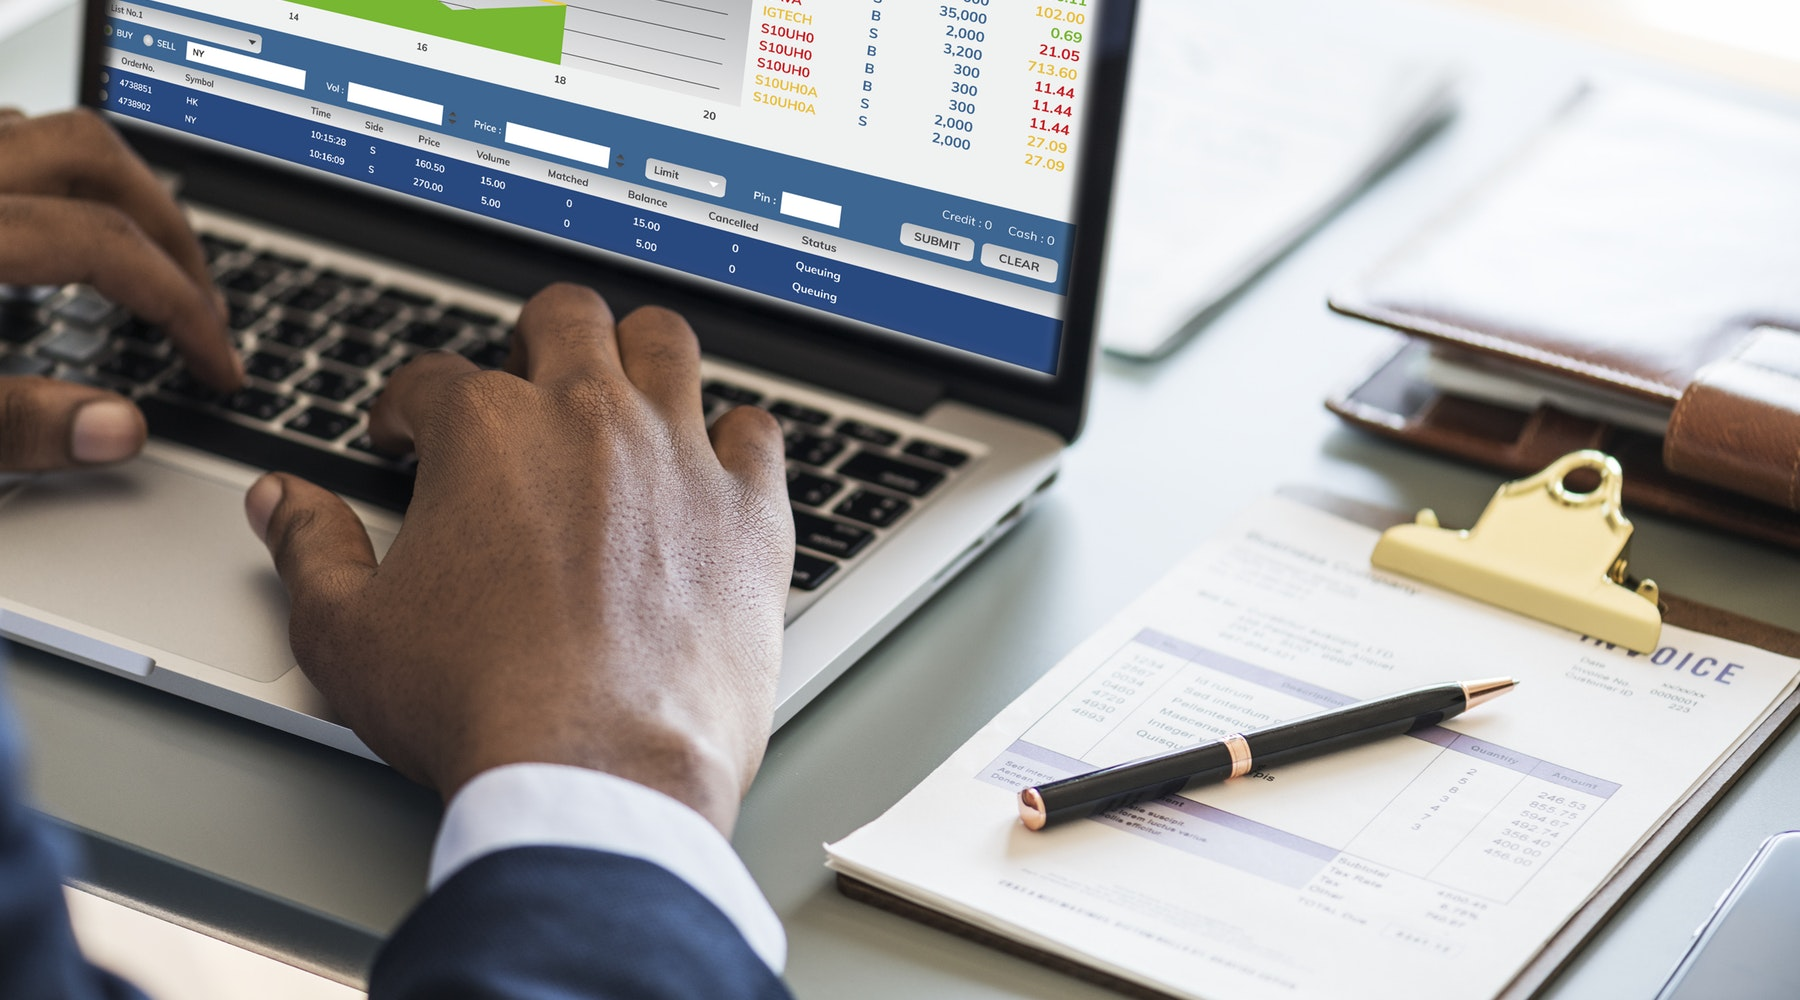 Introduction to Managerial Accounting (Cost Accounting) [Paid Course]